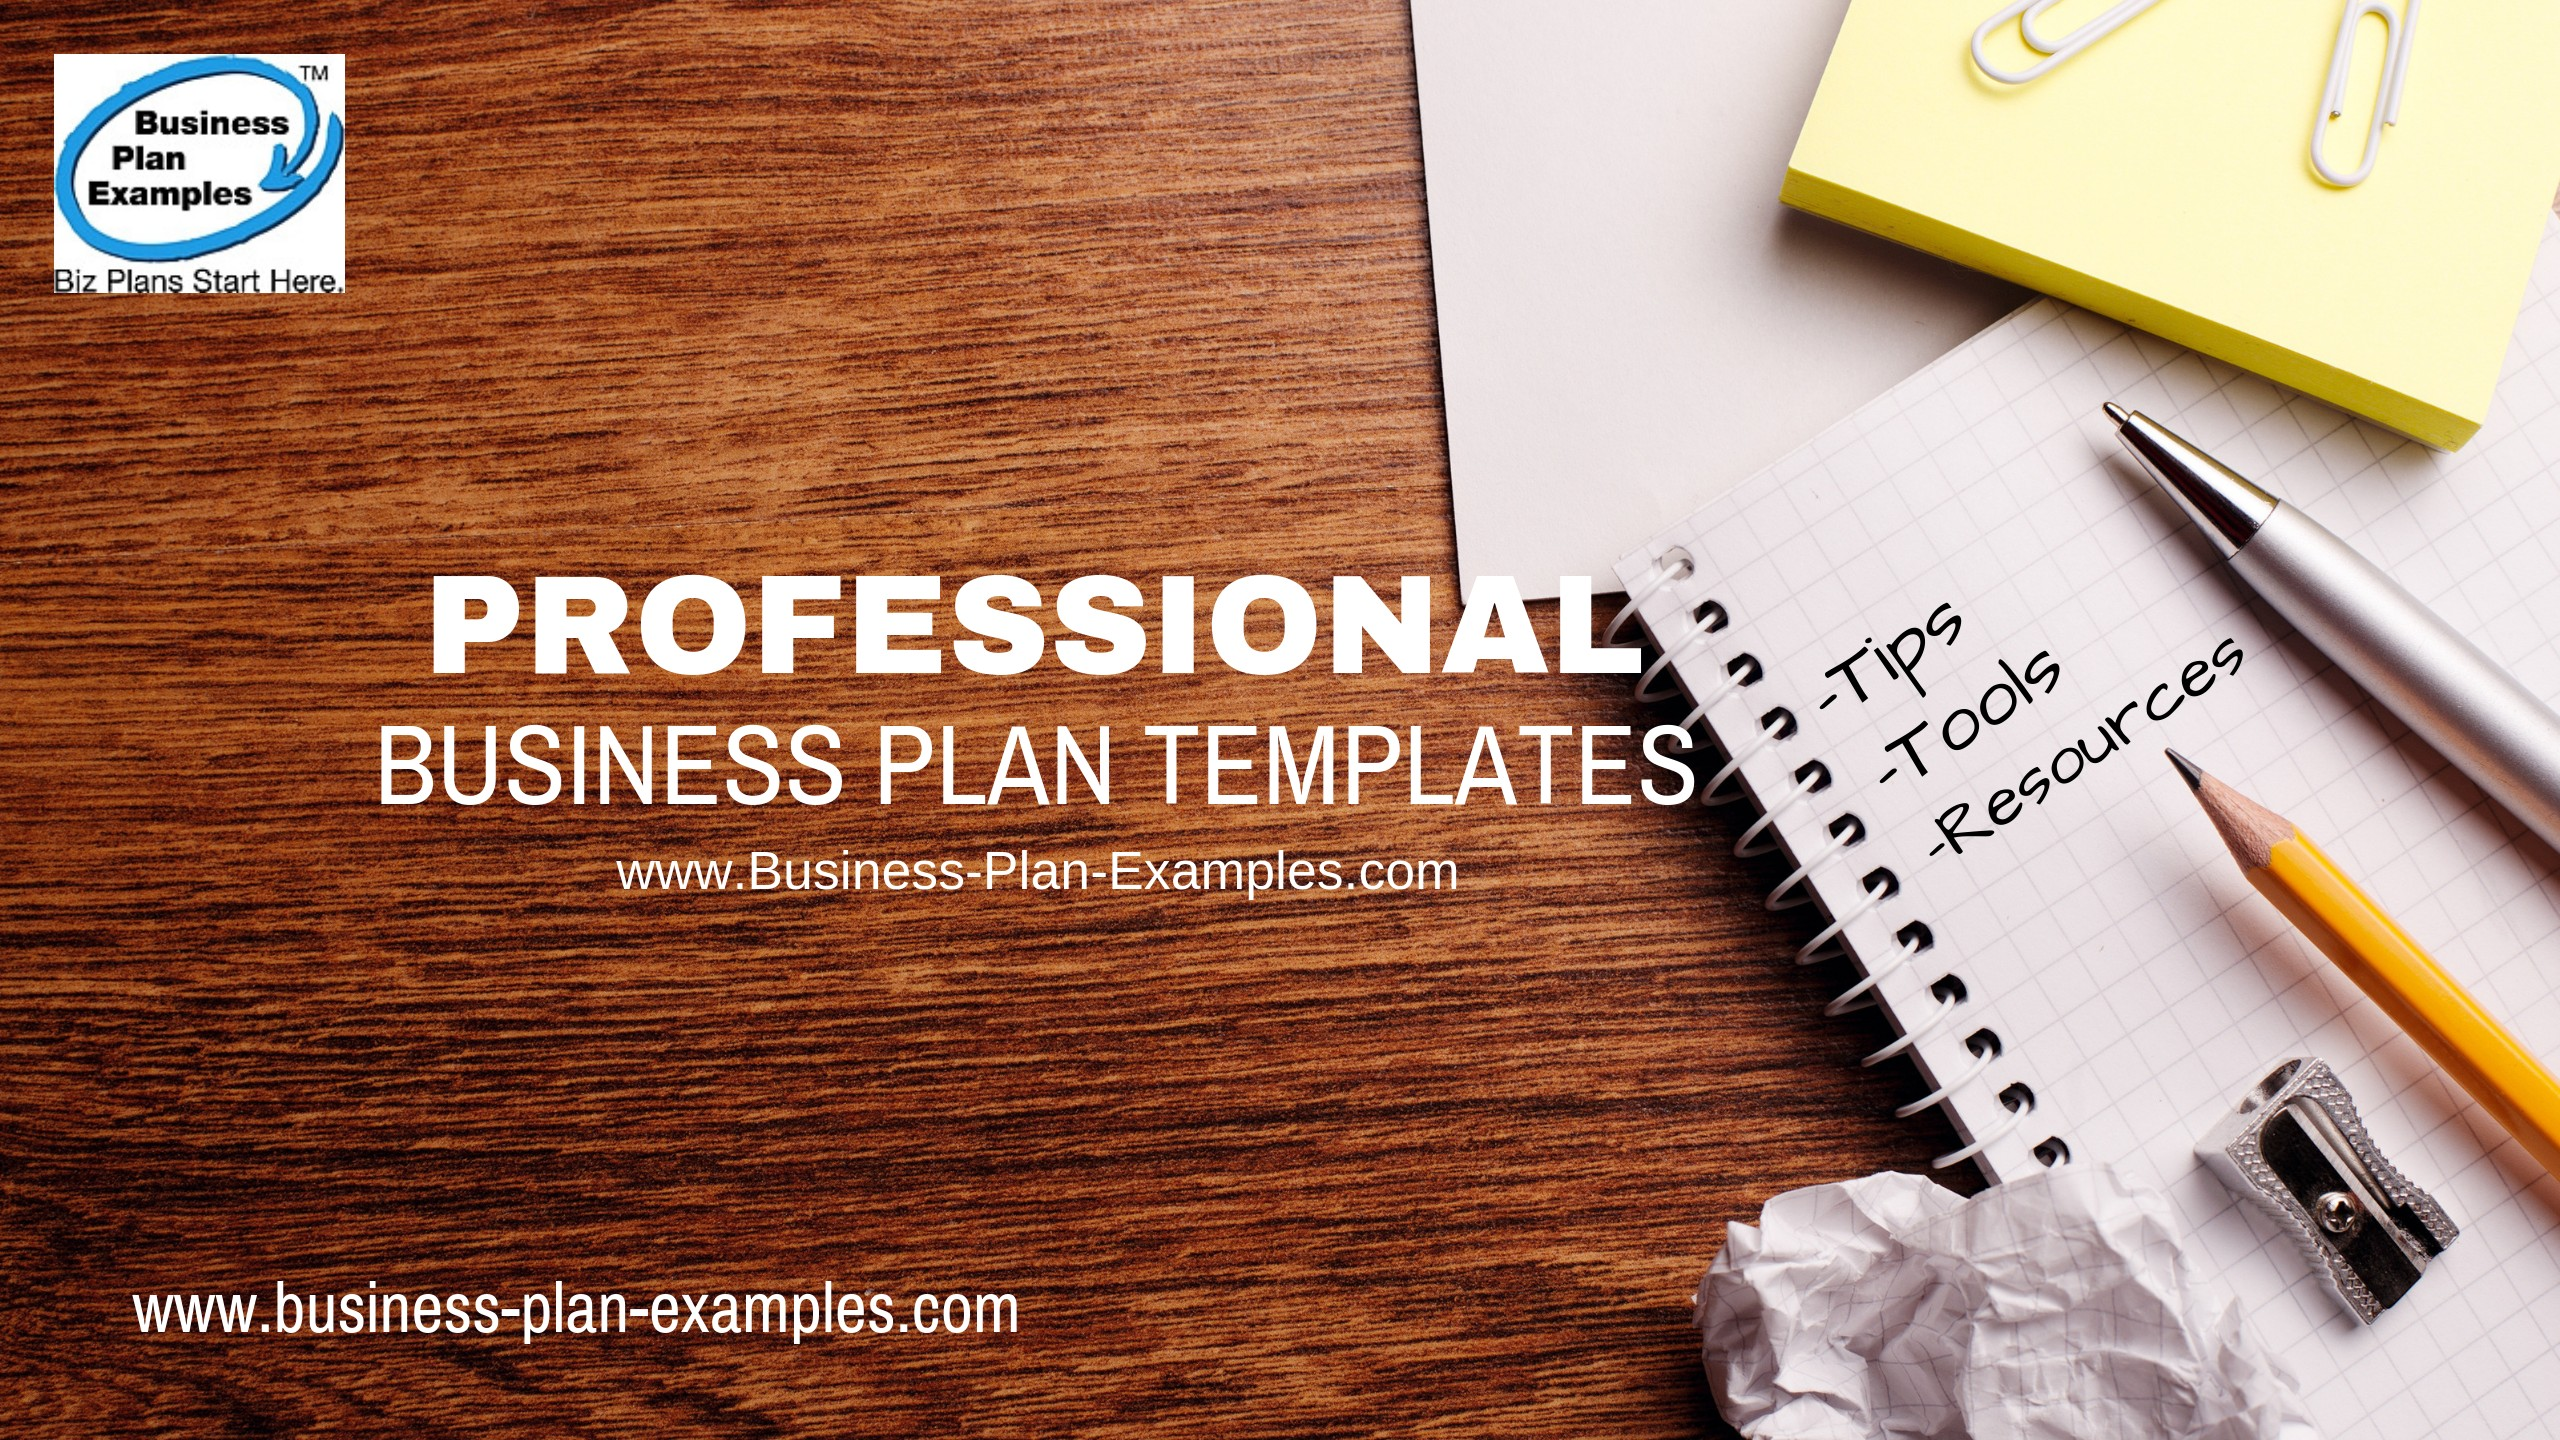 Business Plan Examples Linkedin